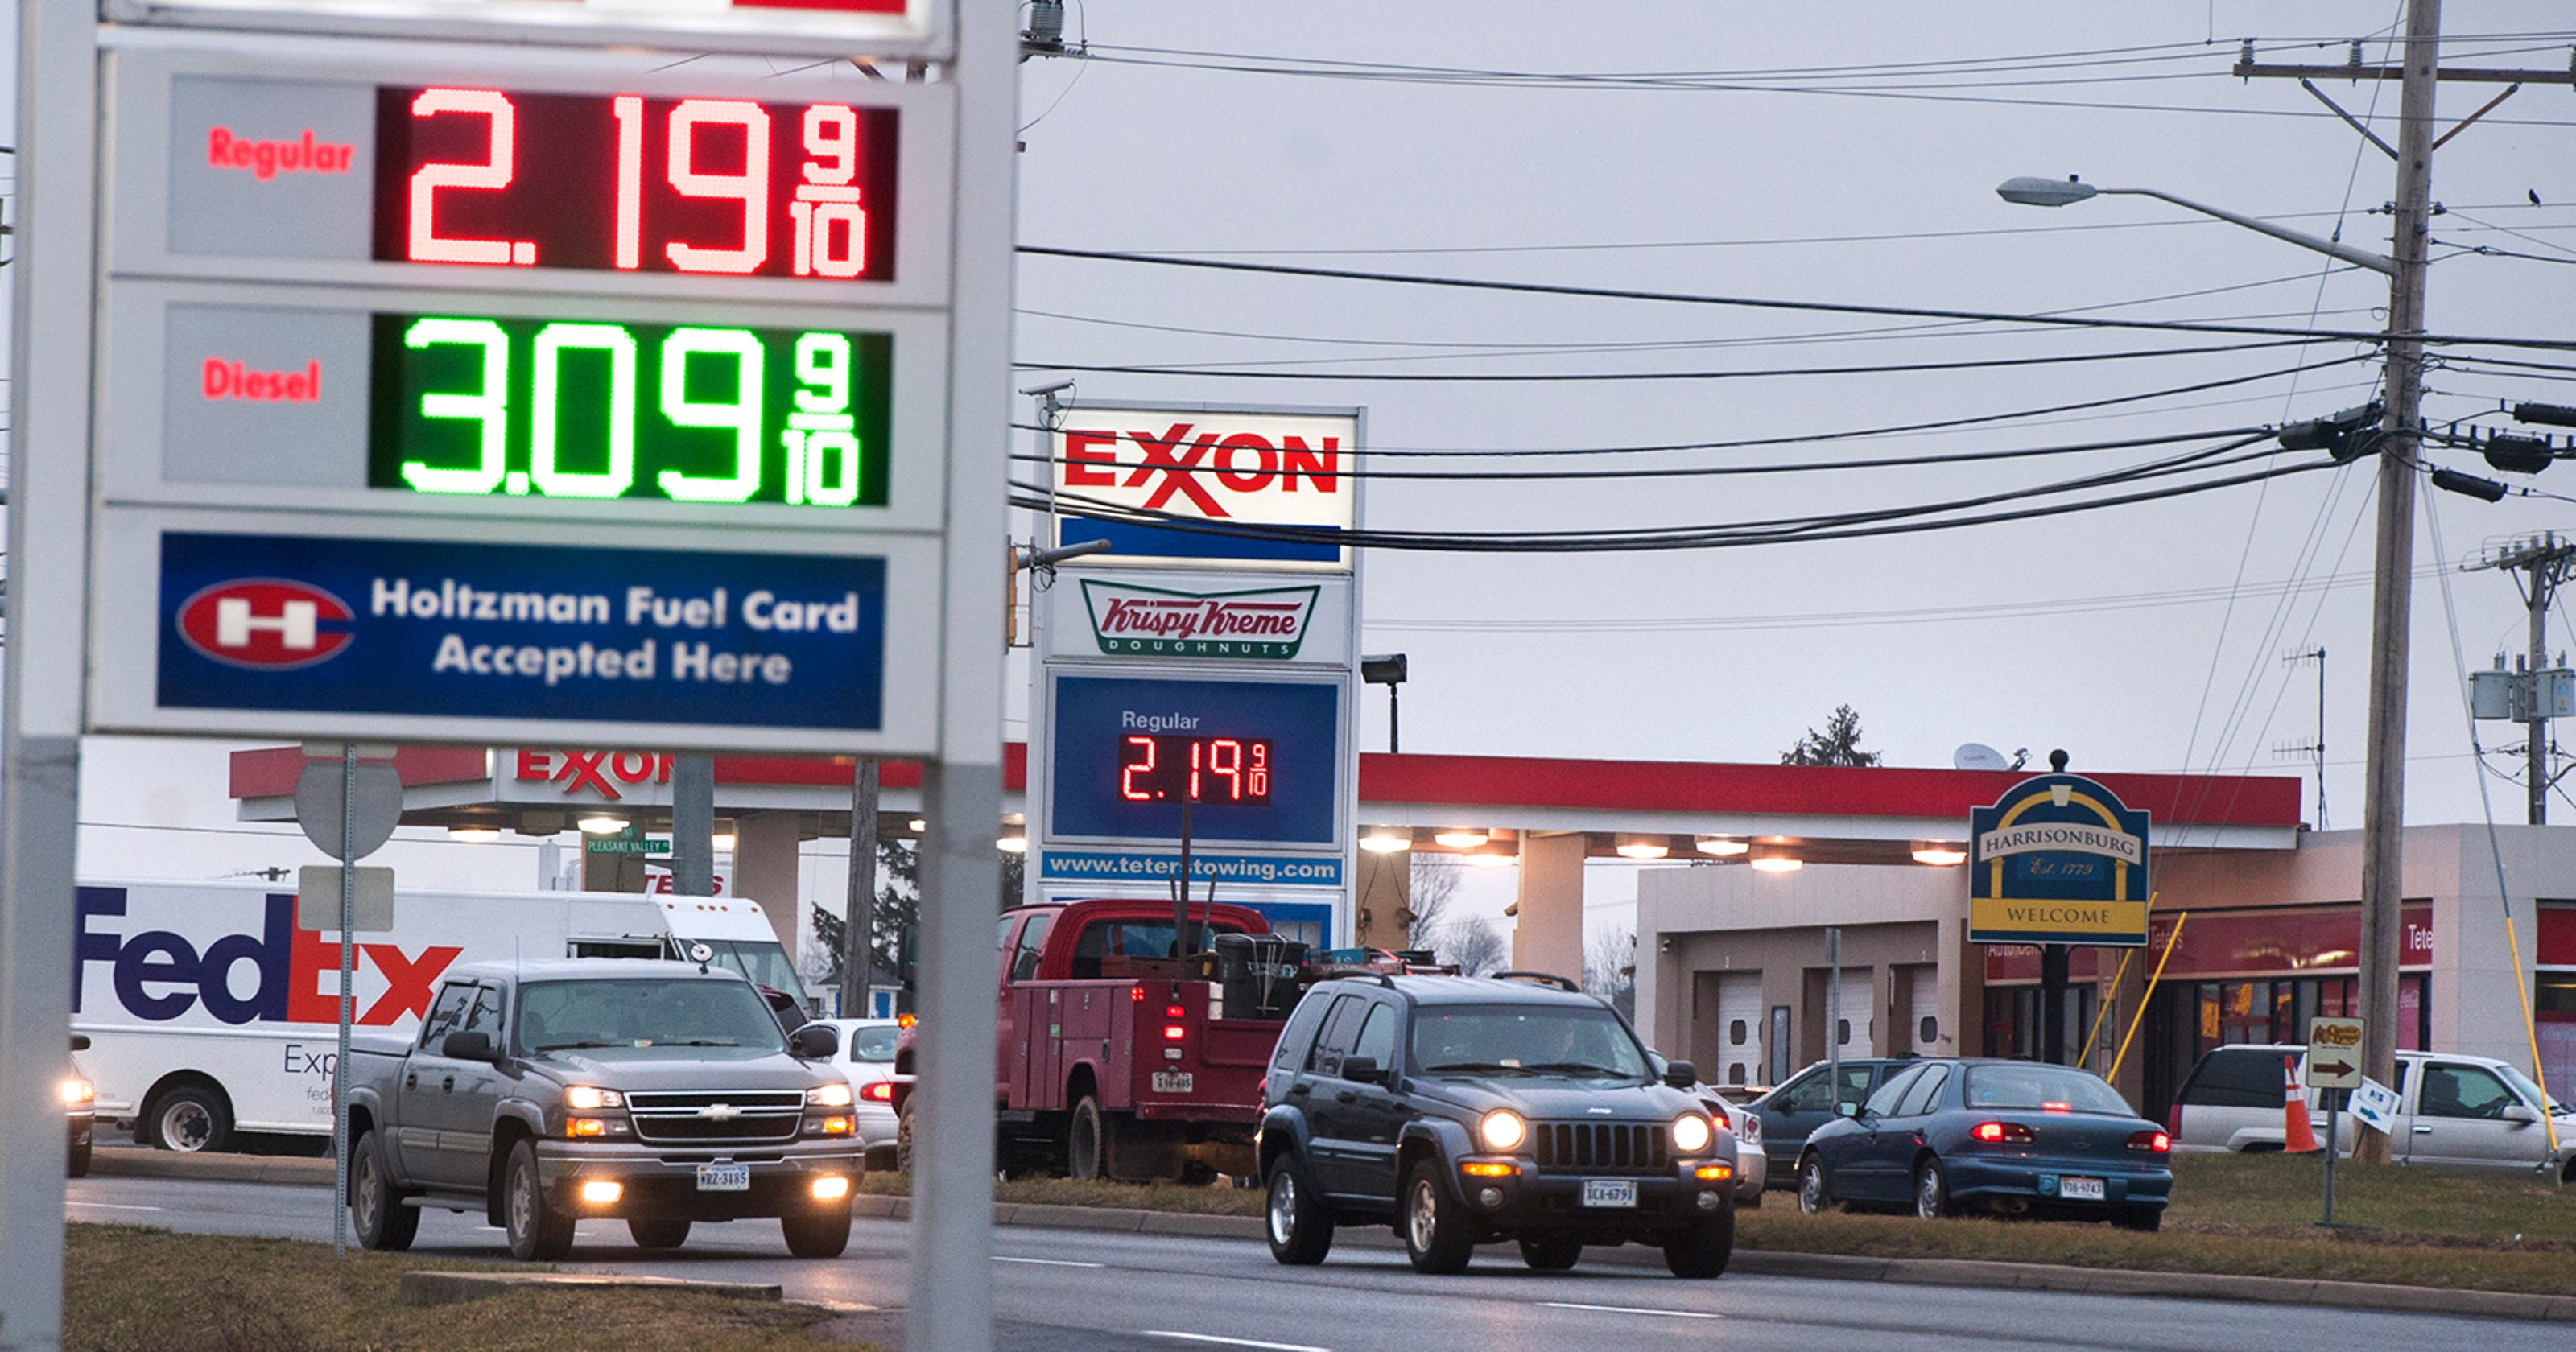 Diesel fuel still costly despite fall in gas prices